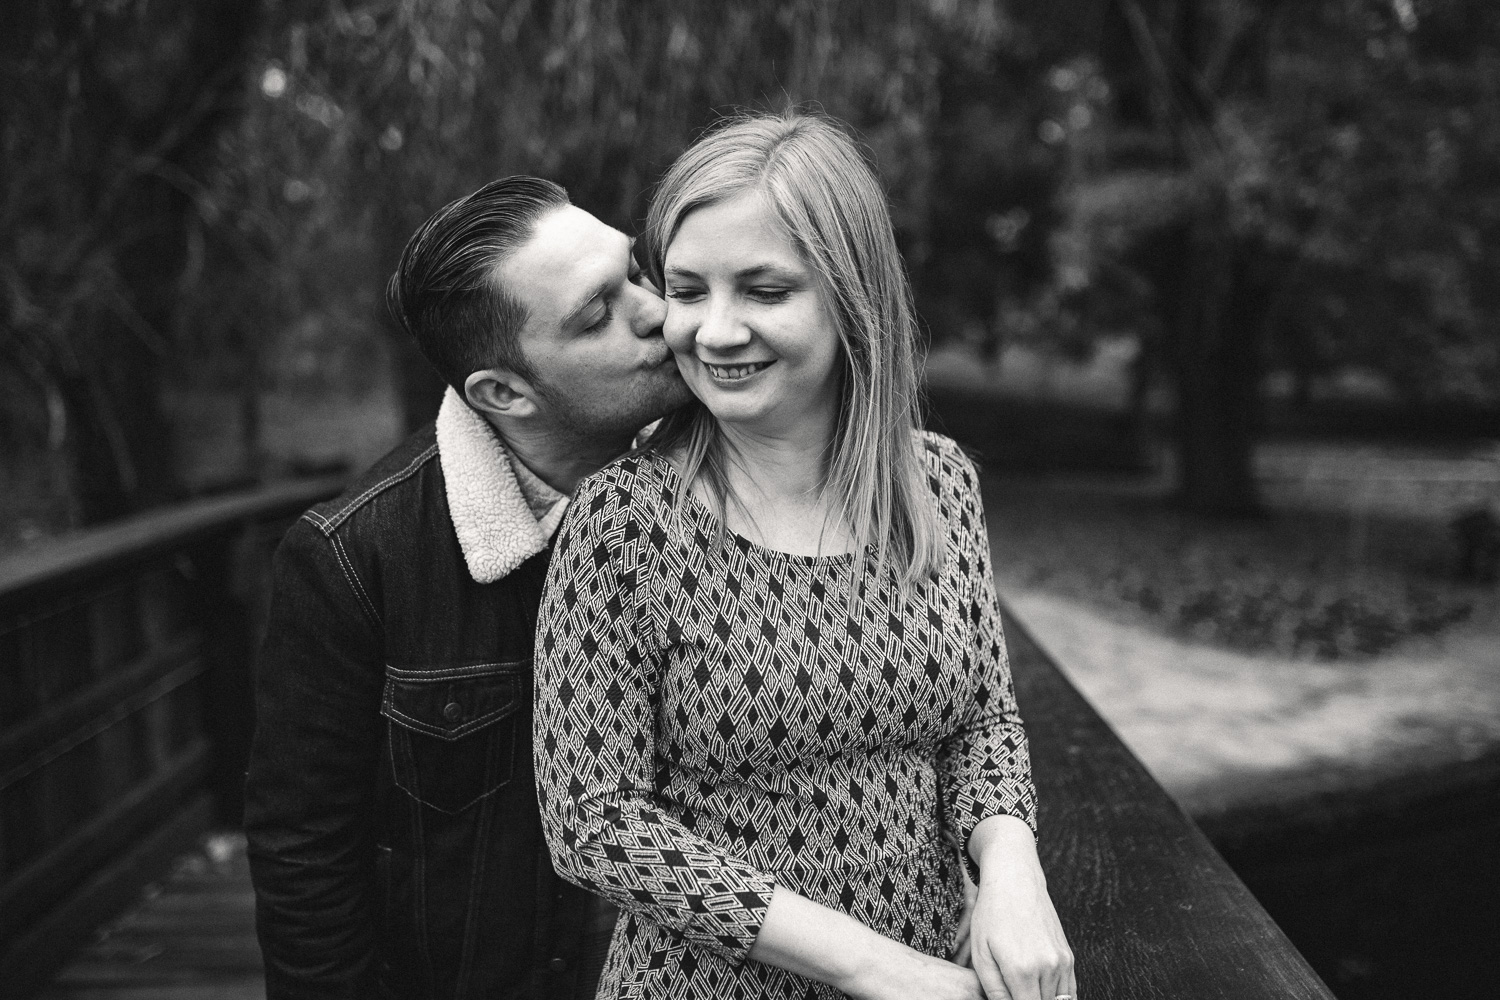 Kate_Bobby__Engagement_Session_Kansas_City_In_Home_Session_Autumn_Kelsey_Diane_Photography-0713.jpg